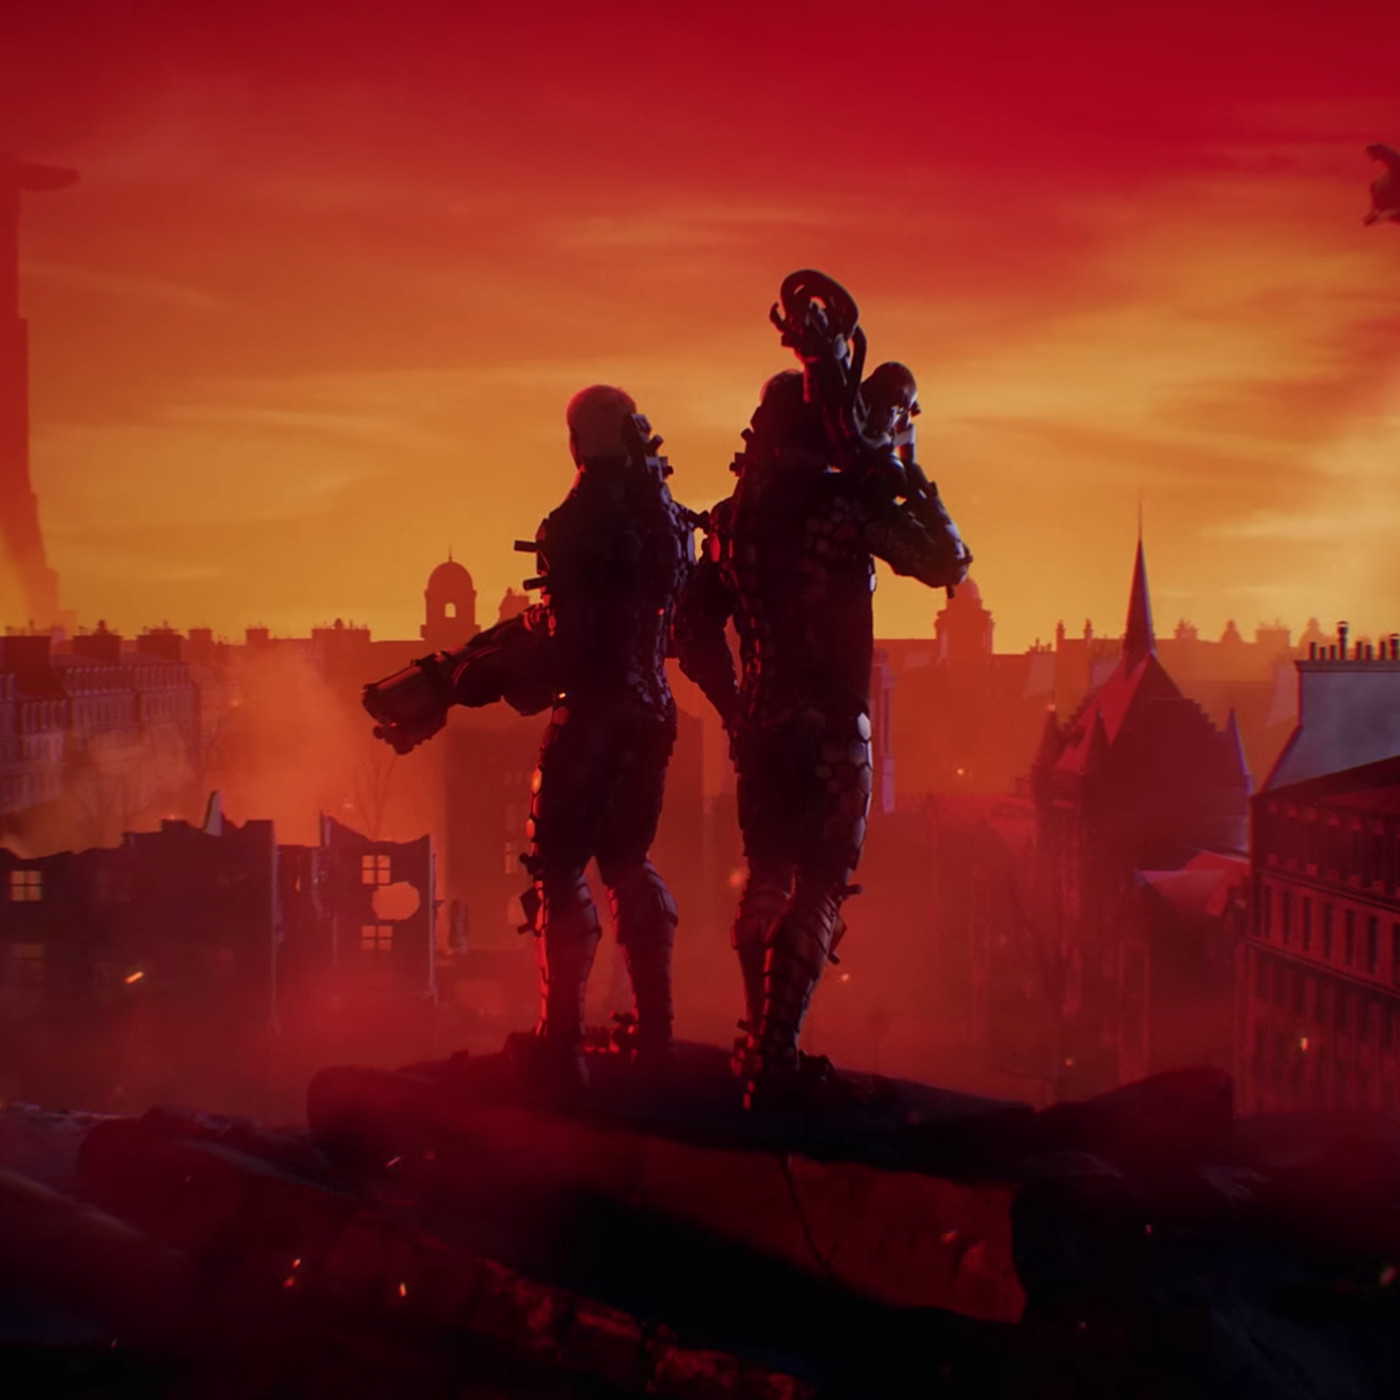 Wolfenstein: Youngblood features twin sisters killing Nazis in 1980s